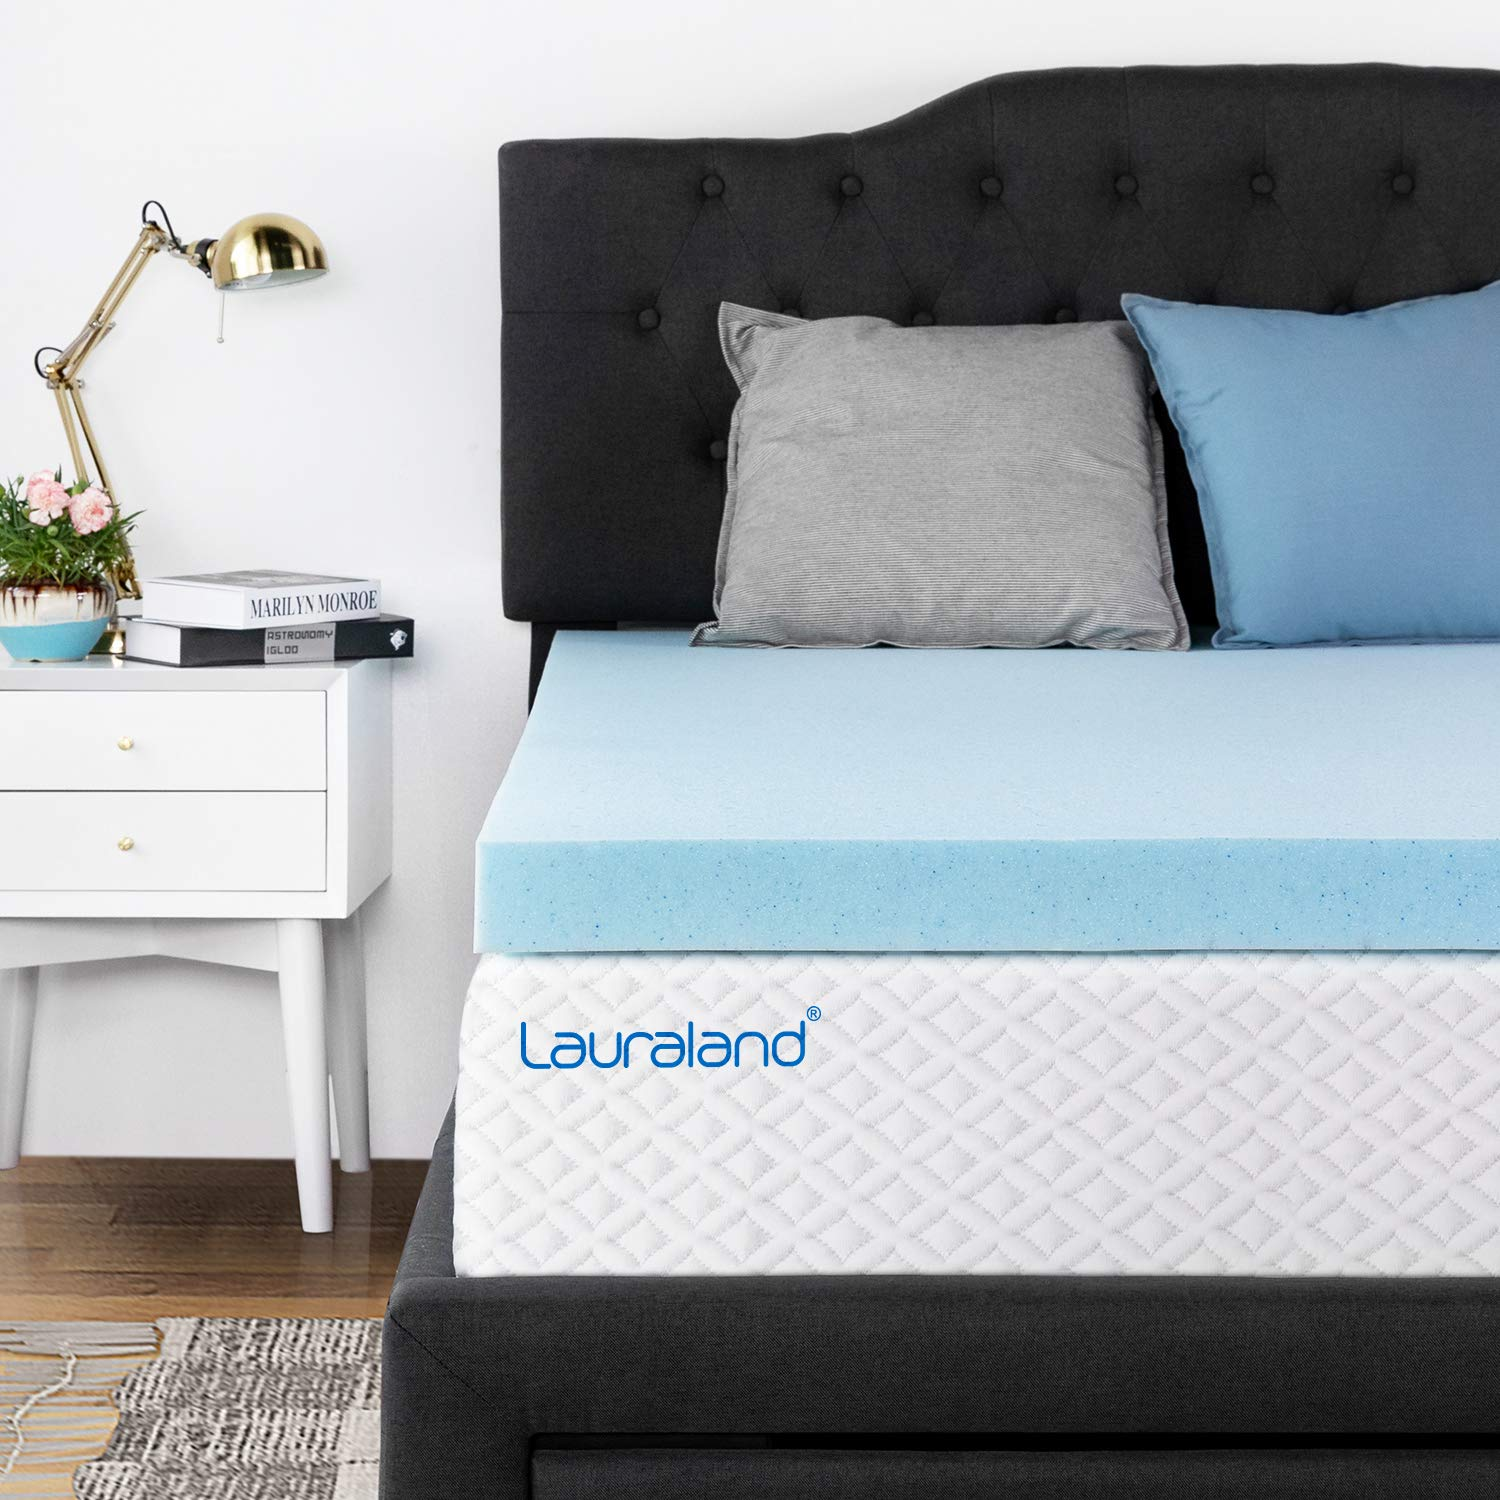 Lauraland Memory Foam Mattress Topper Queen, 3-Inch Active Cooling Design Bed Topper, CertiPUR-US 10-Year Warranty by Lauraland